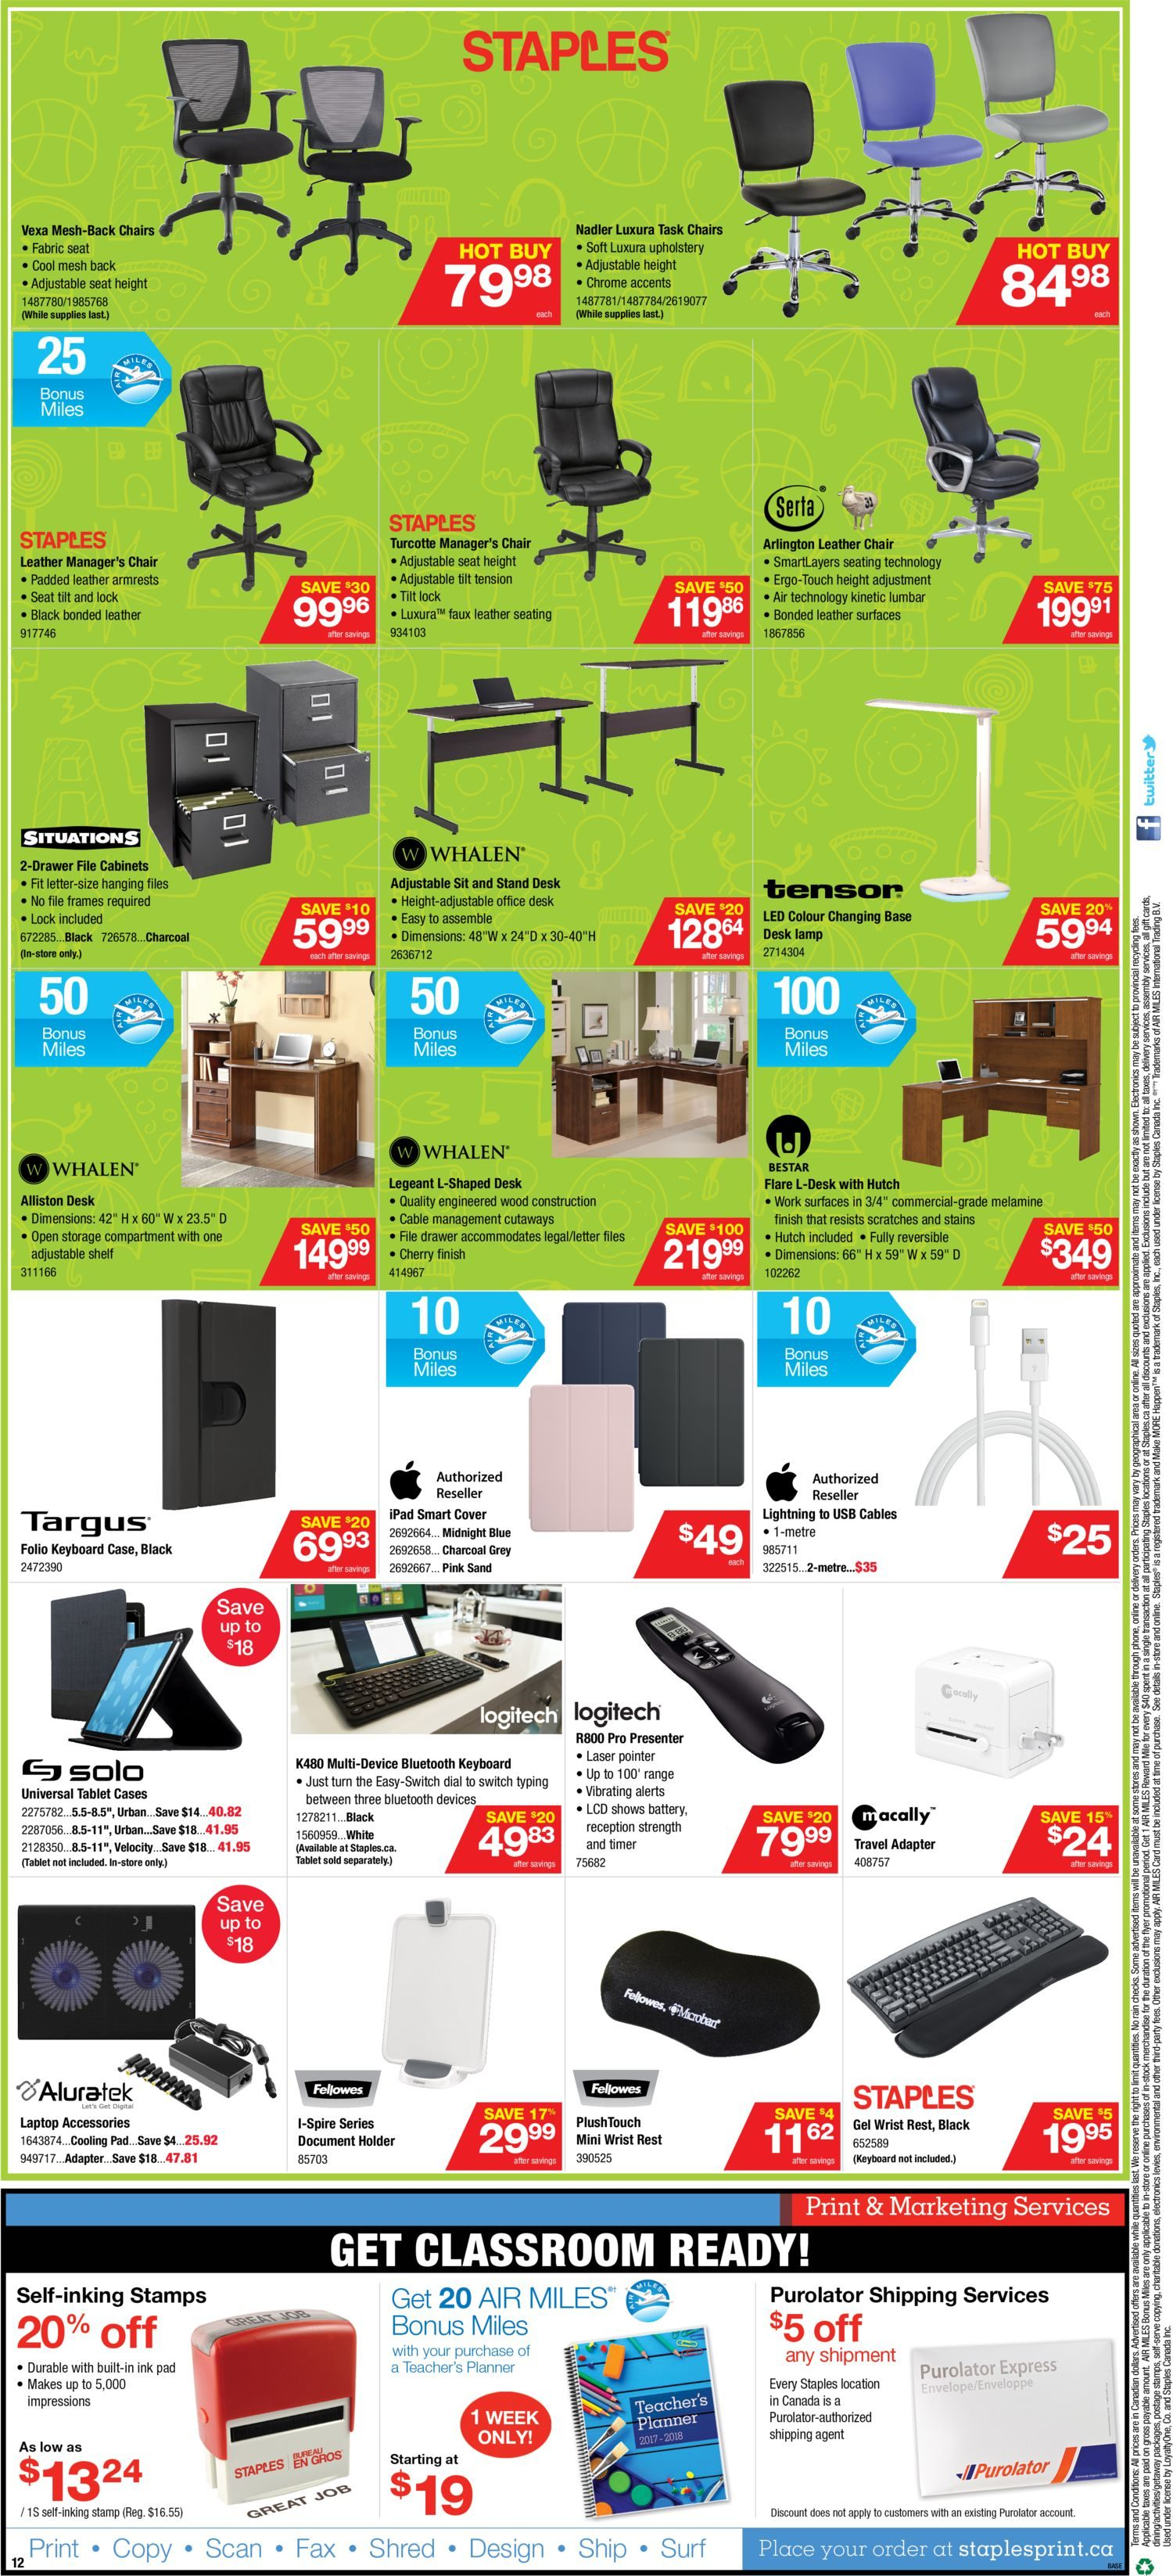 Staples Weekly Flyer Weekly Back to School Low Prices Aug 30